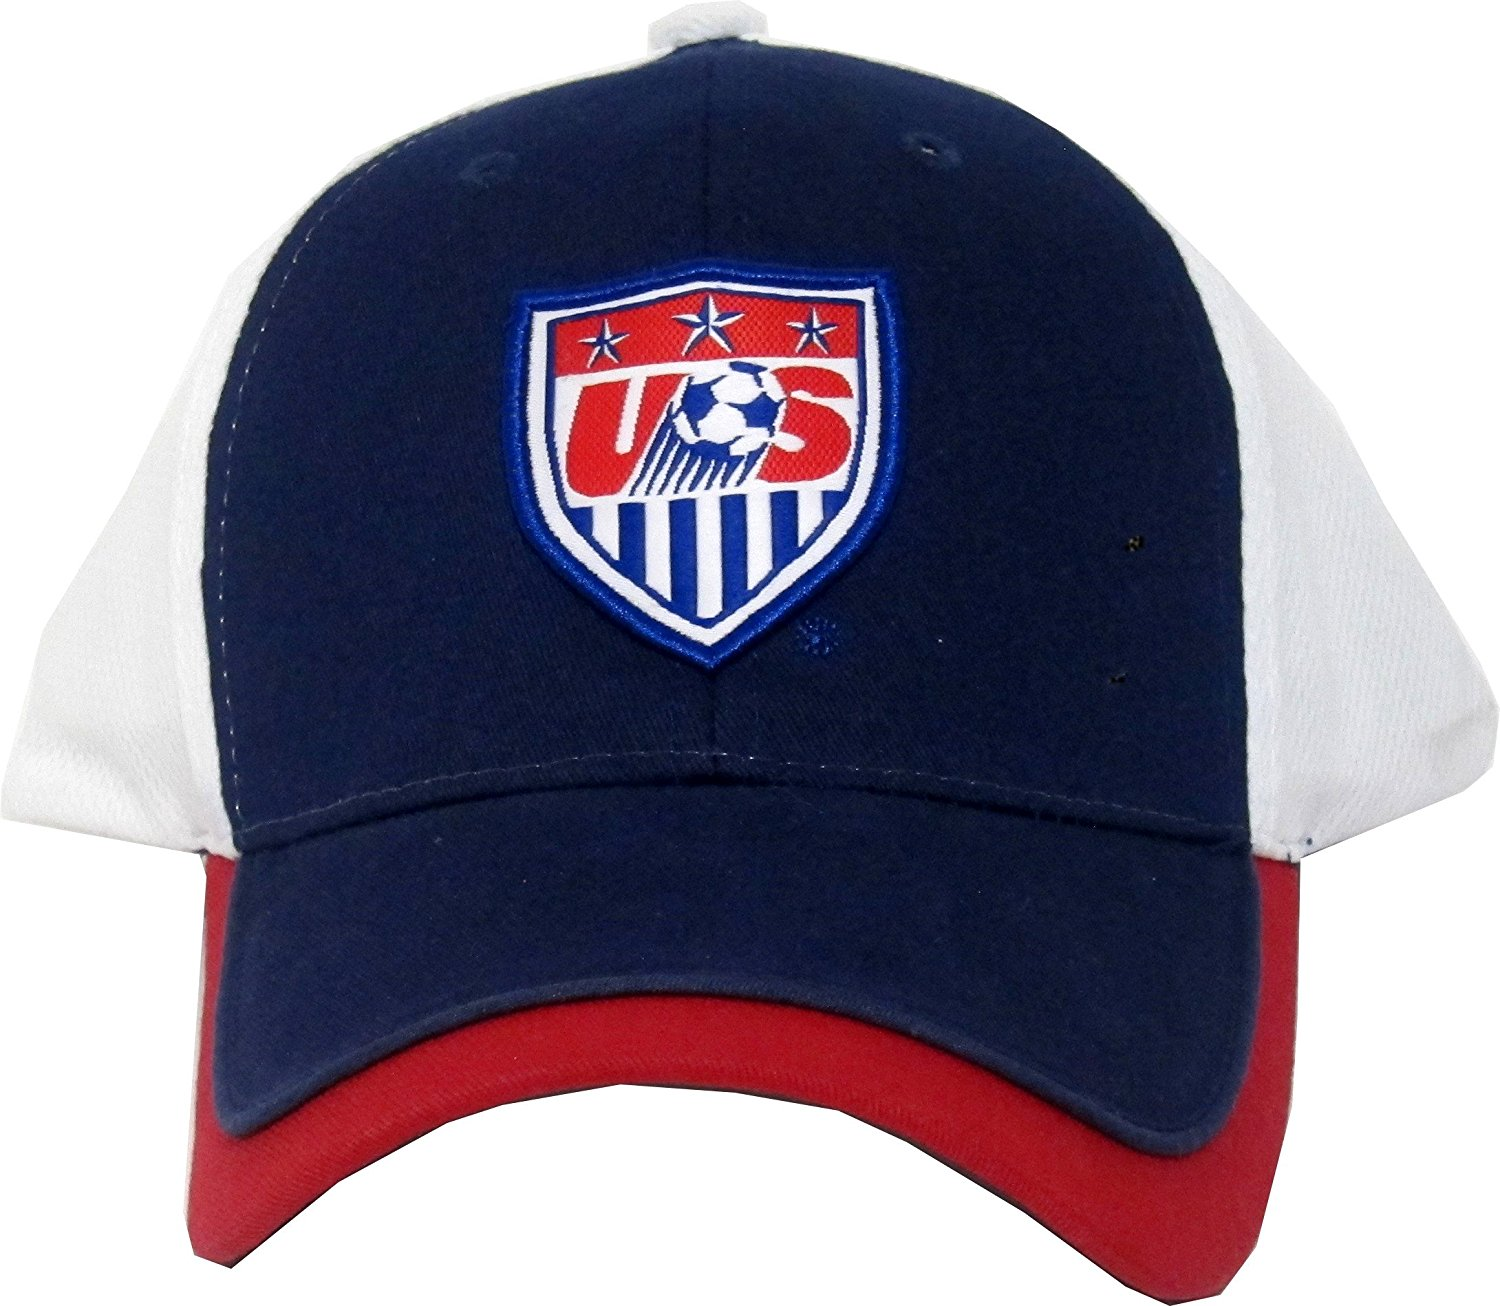 4e17a807e05 Get Quotations · Team USA Soccer 2014 Soccer Adjustable Baseball Hat Cap-Blue  with Red and White